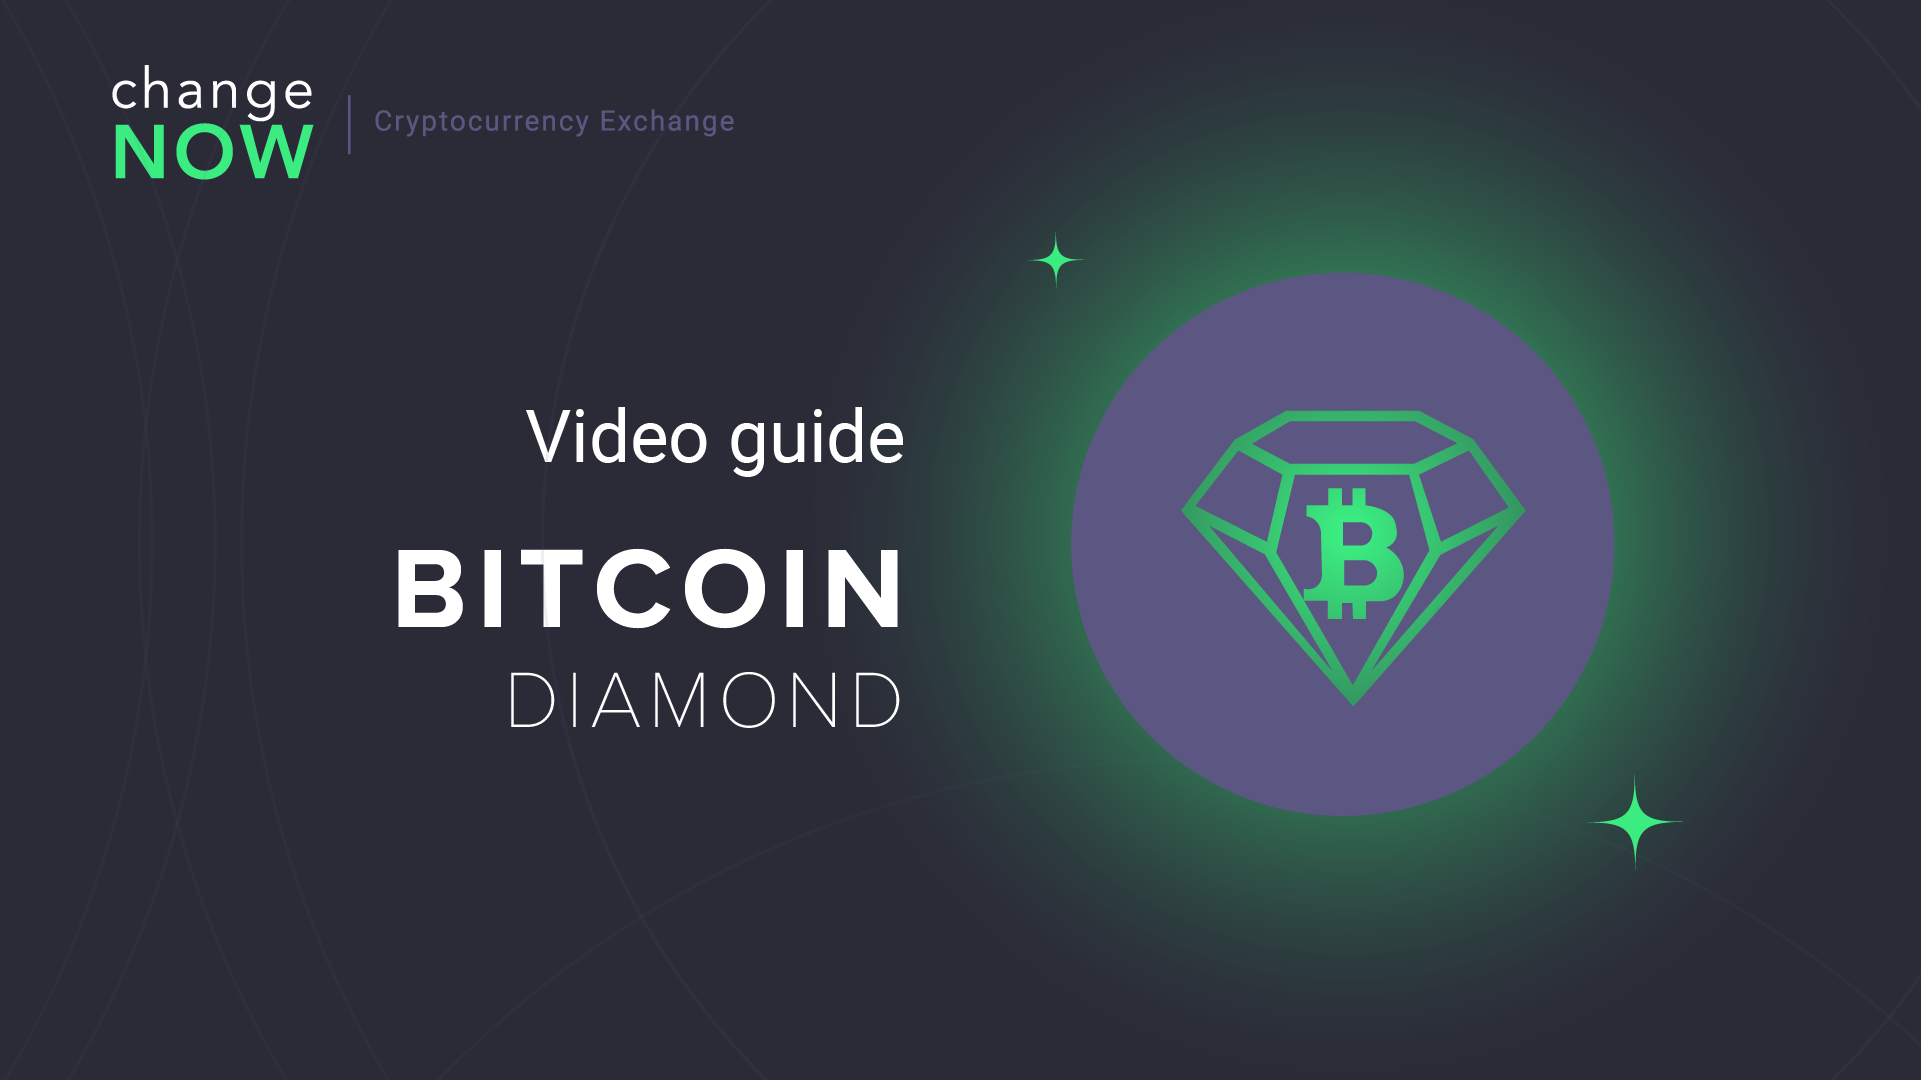 How To Buy Bitcoin Diamond on ChangeNOW.io - Quick and Easy Swaps with More than 200 Cryptos [GUIDE]